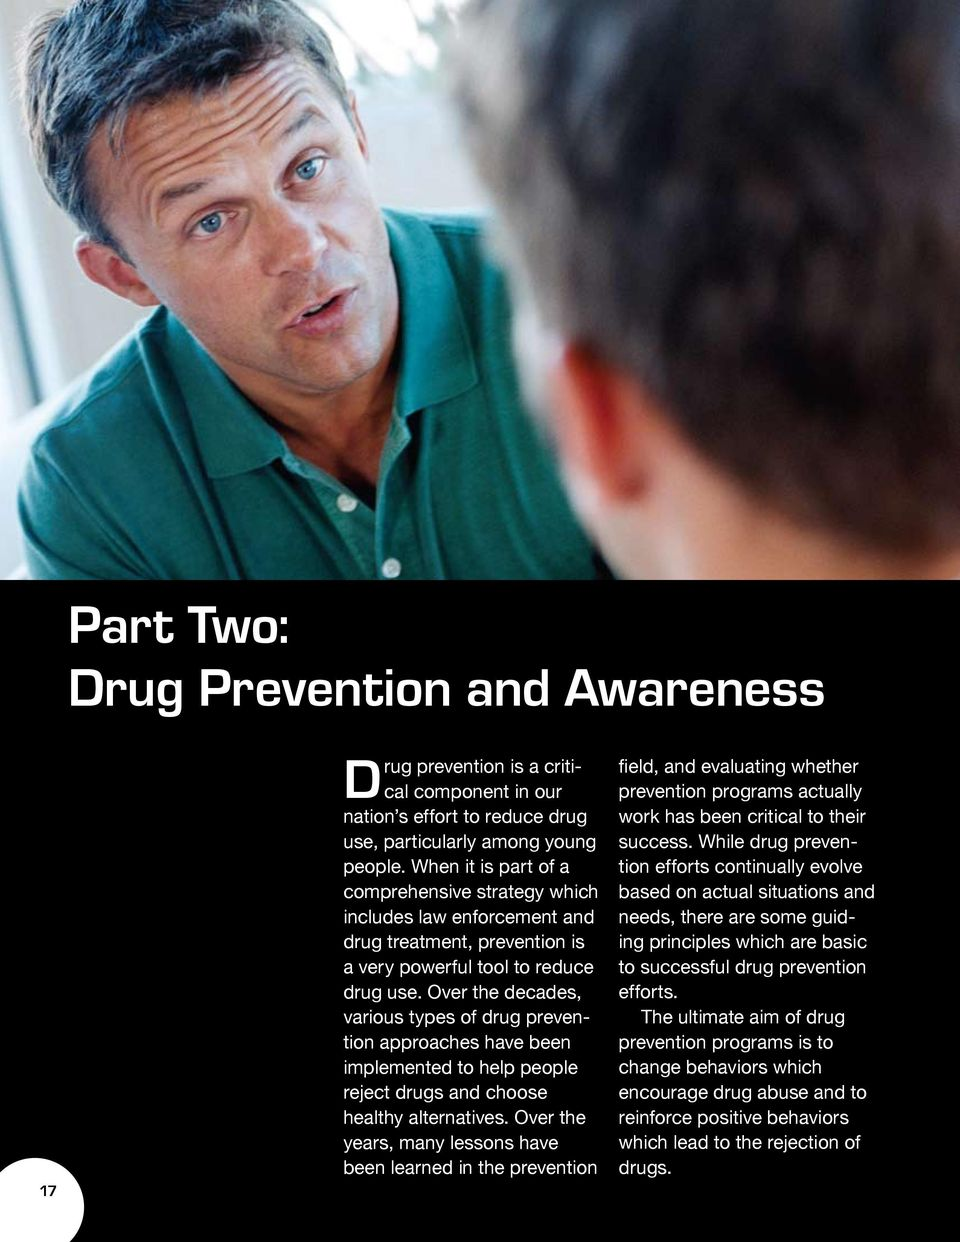 Over the decades, various types of drug prevention approaches have been implemented to help people reject drugs and choose healthy alternatives.